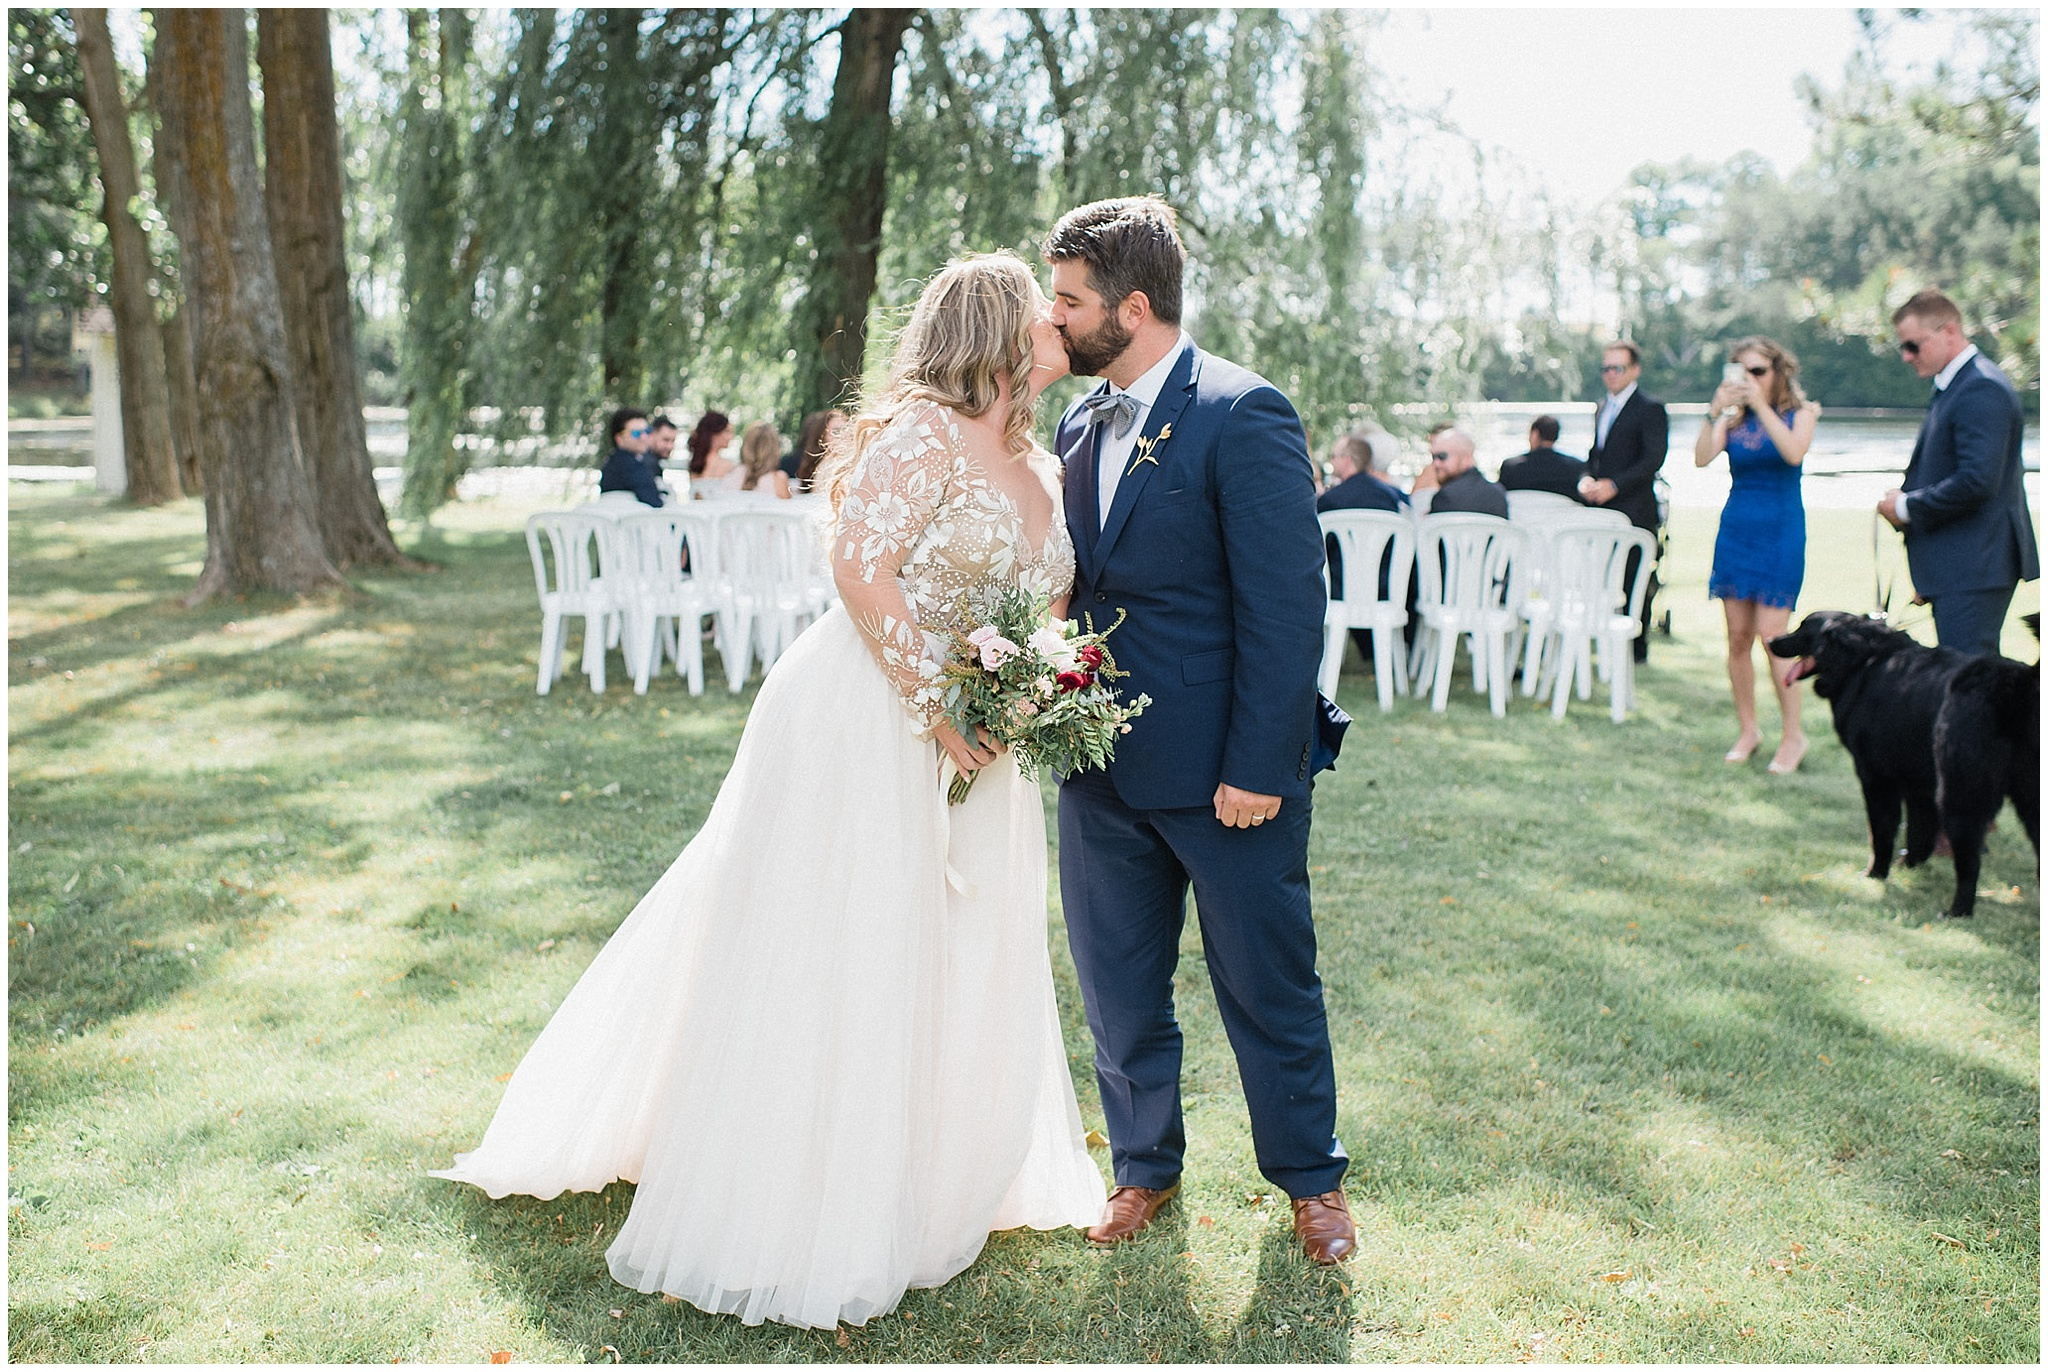 Outdoor ceremony at Tralee Wedding Facility, photographed by Jenn Kavanagh Photography